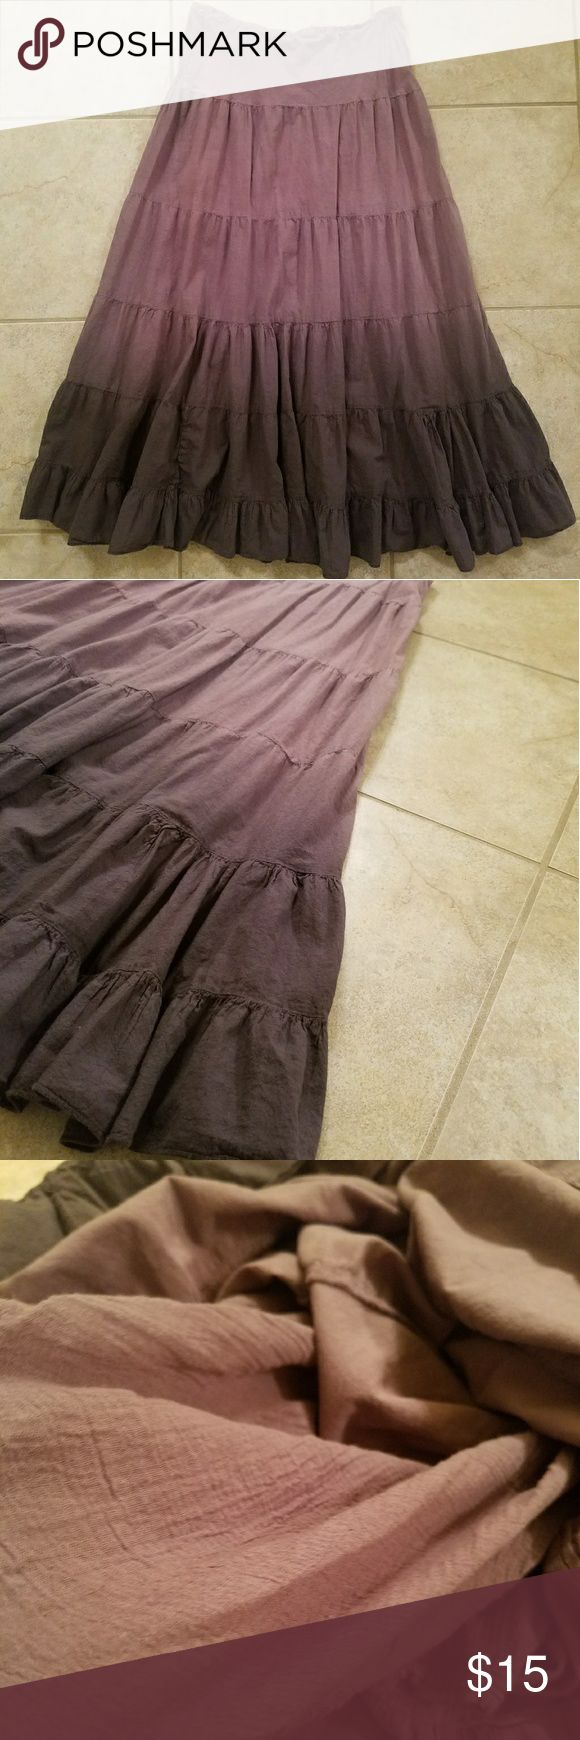 Mlle Gabrielle Ombre Deep Purple Plum Maxi Skirt Beautiful, Flowy Deep Purple/ Plum Colored Mlle Gabrielle Ombre Maxi Skirt! Unique in everyway! Made in India from 100% Cotton, very Soft and in Good Condition! Has an attached cotton under slip, that goes approx. 1/3 of the way down from the top of the skirt for extra coverage in that area! Elastic waist band and approx. 35 inches from waist band to bottom of the skirt. Size Small. Mlle Gabrielle Skirts Maxi